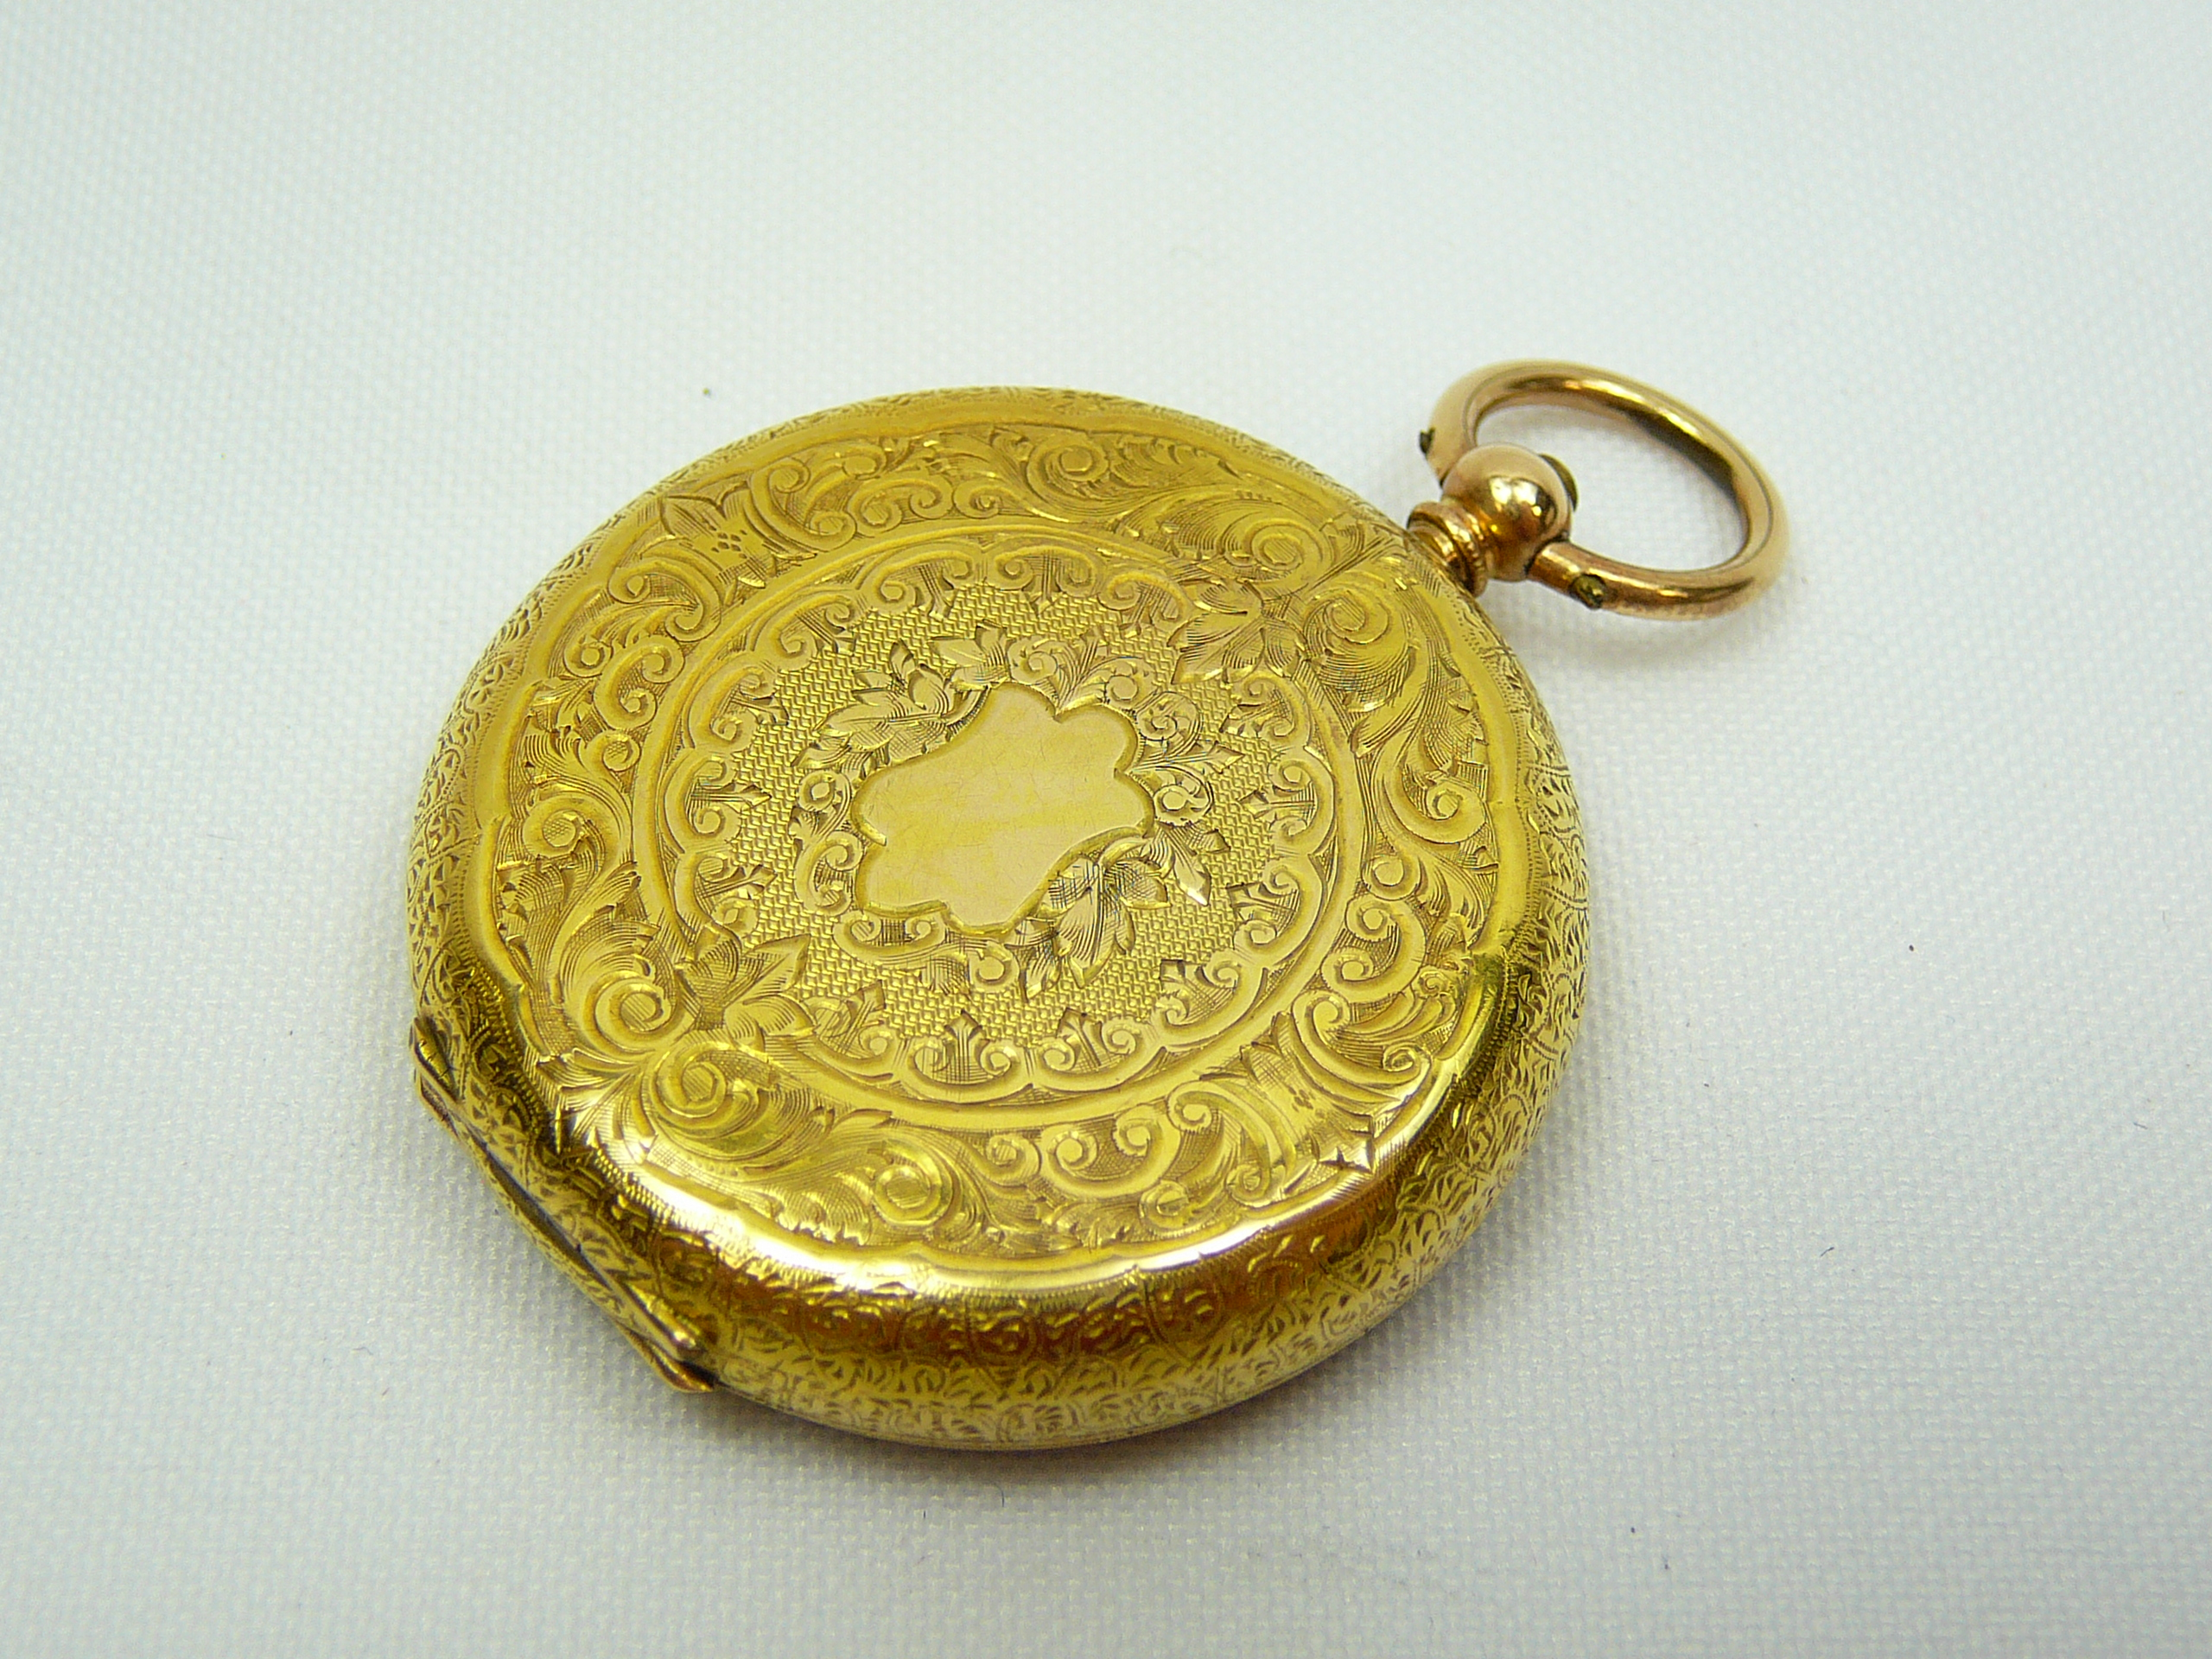 Ladies Antique Gold Fob Watch - Image 2 of 5